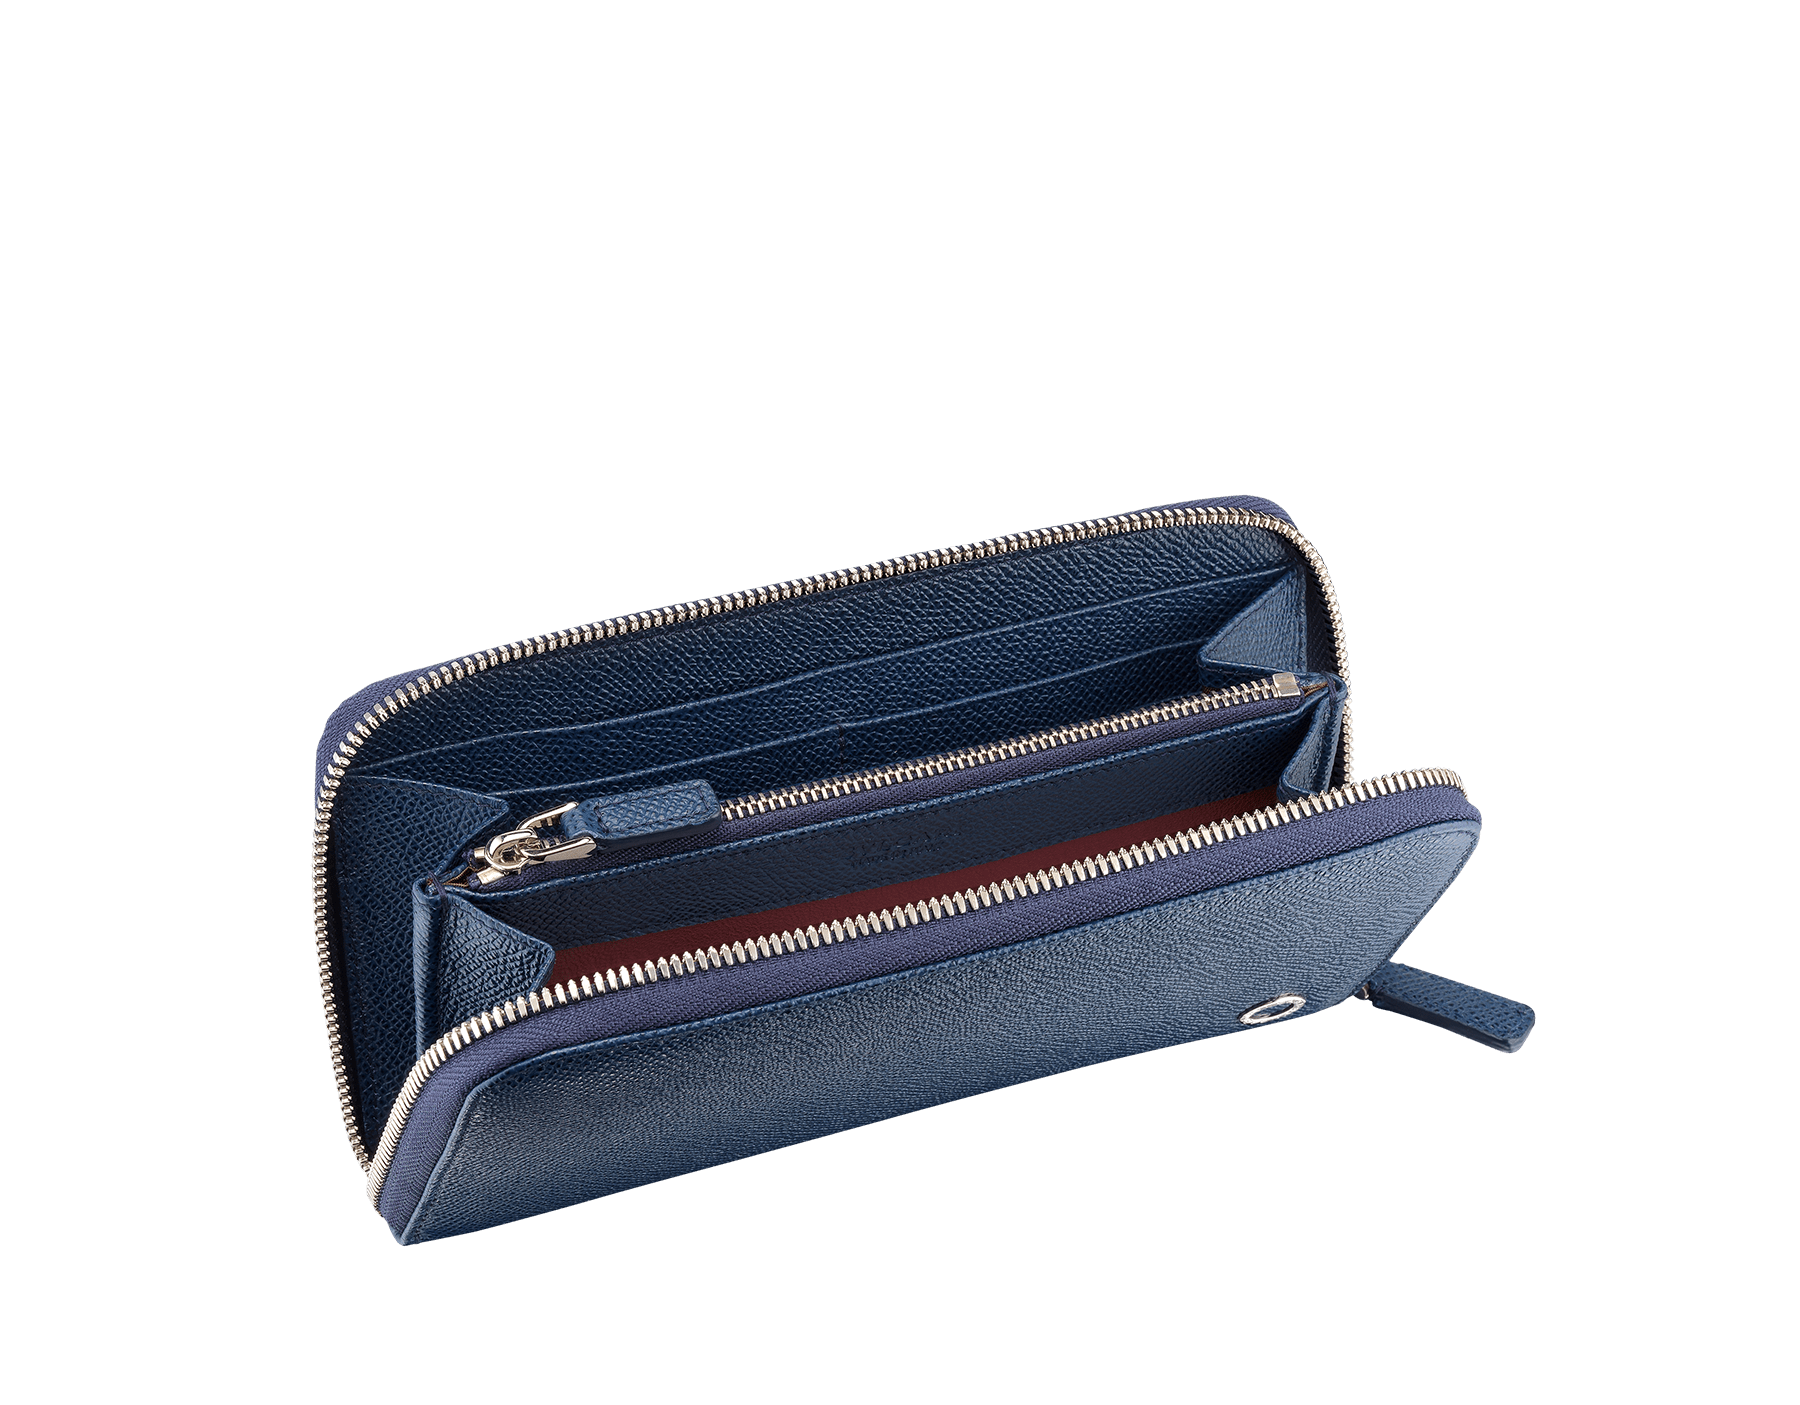 """BVLGARI BVLGARI"" large zipped wallet in Pluto Stone gray and Denim Sapphire blue grained calf leather. Iconic logo-bearing embellishment in palladium-plated brass. BBM-WLT-M-ZIPa image 2"